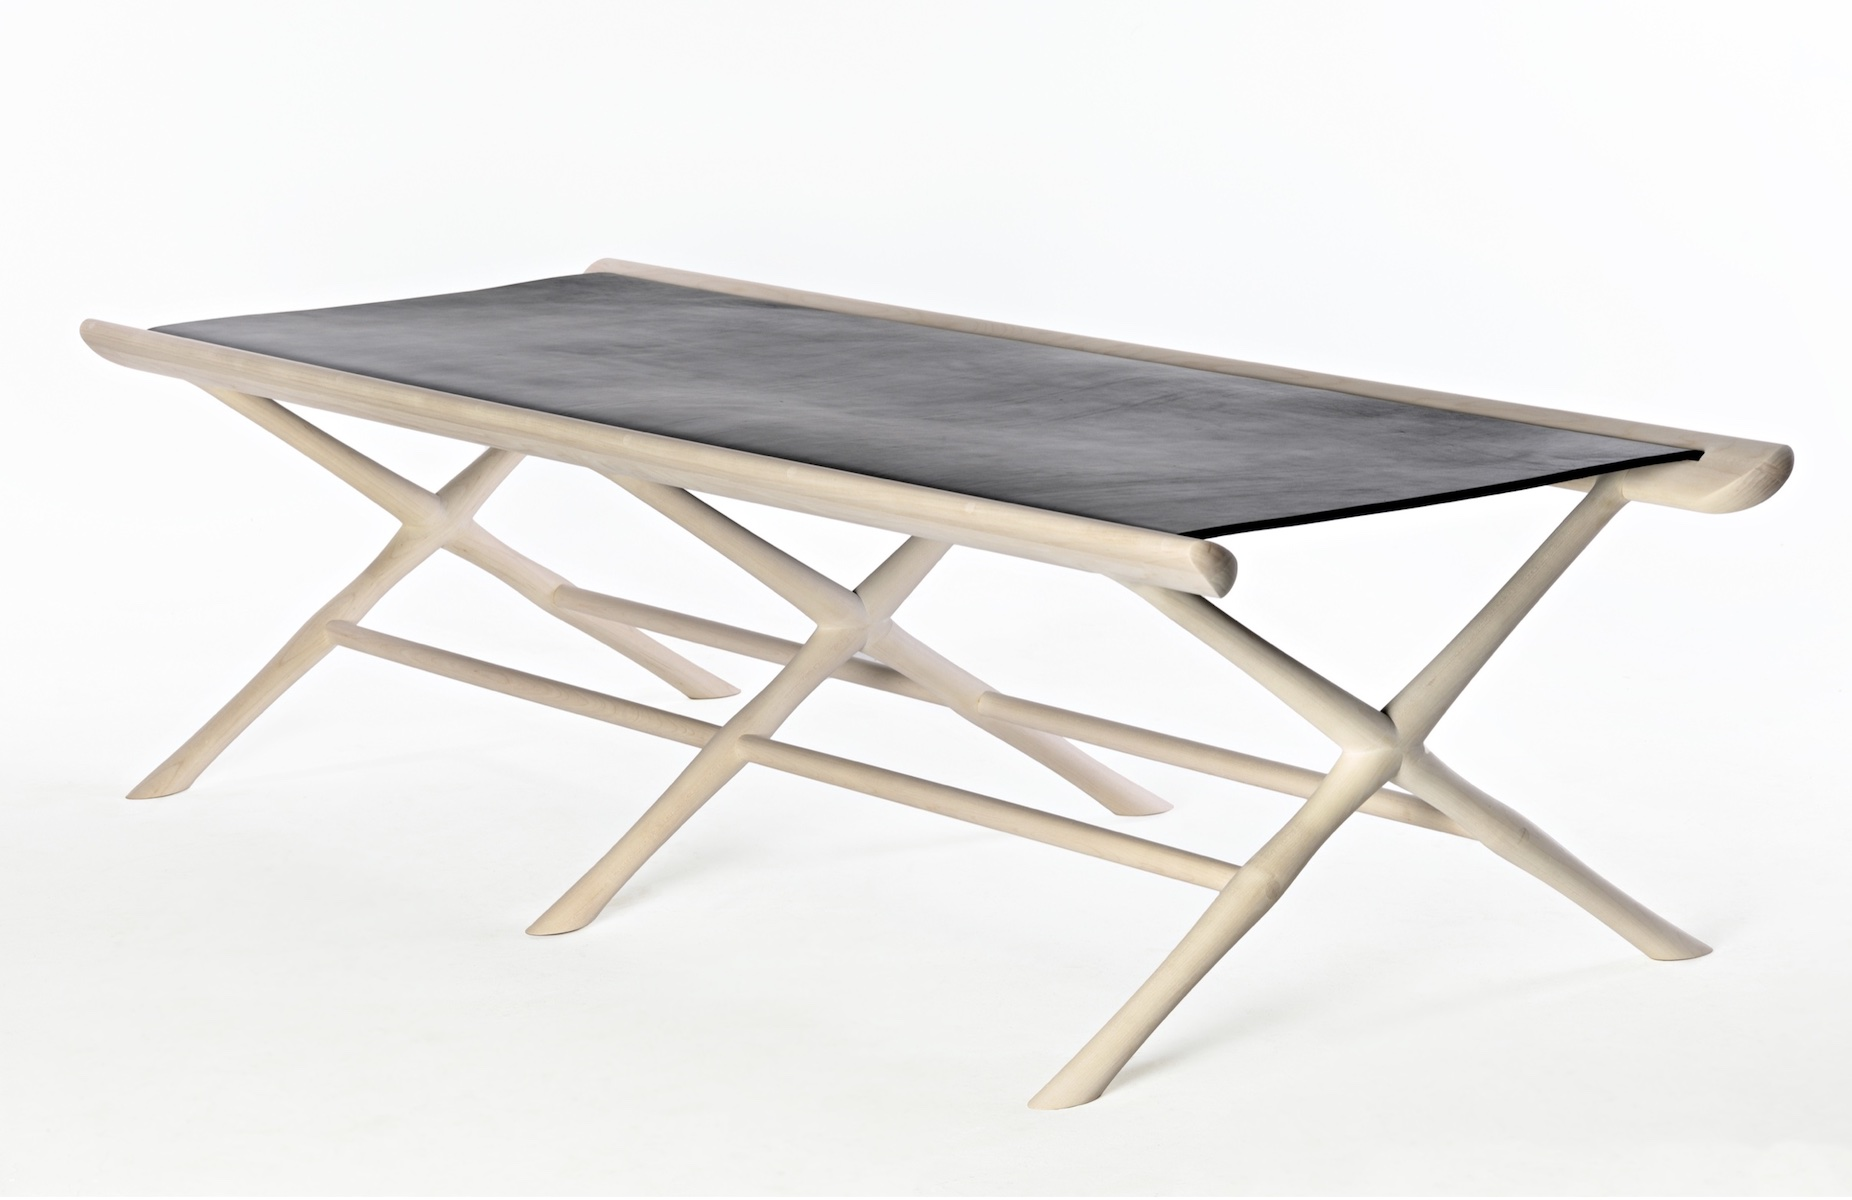 angled view of the Pallet Daybed by artist Christopher Kurtz